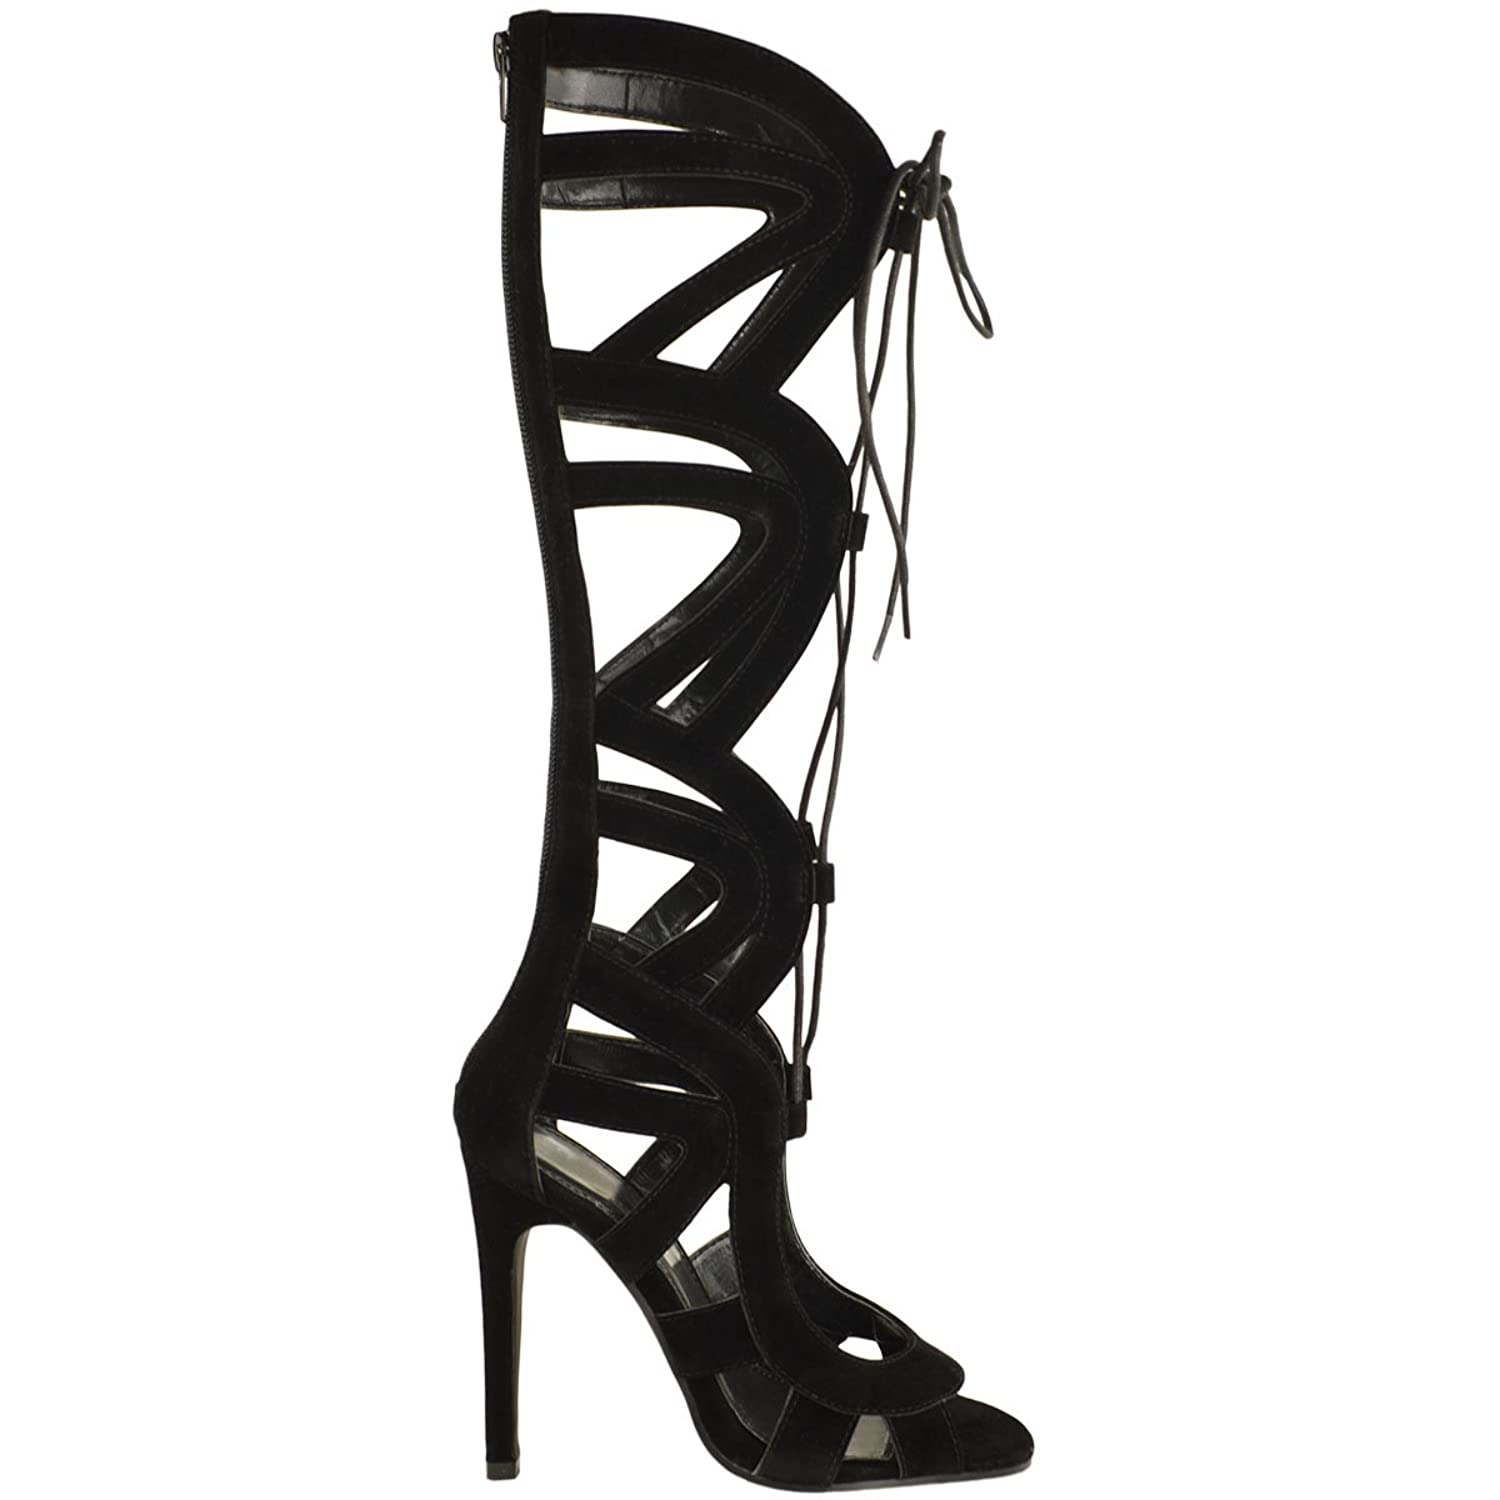 254f6b13cd1 LADIES WOMENS KNEE HIGH LACE UP CUT OUT SHOES HEELS GLADIATOR .